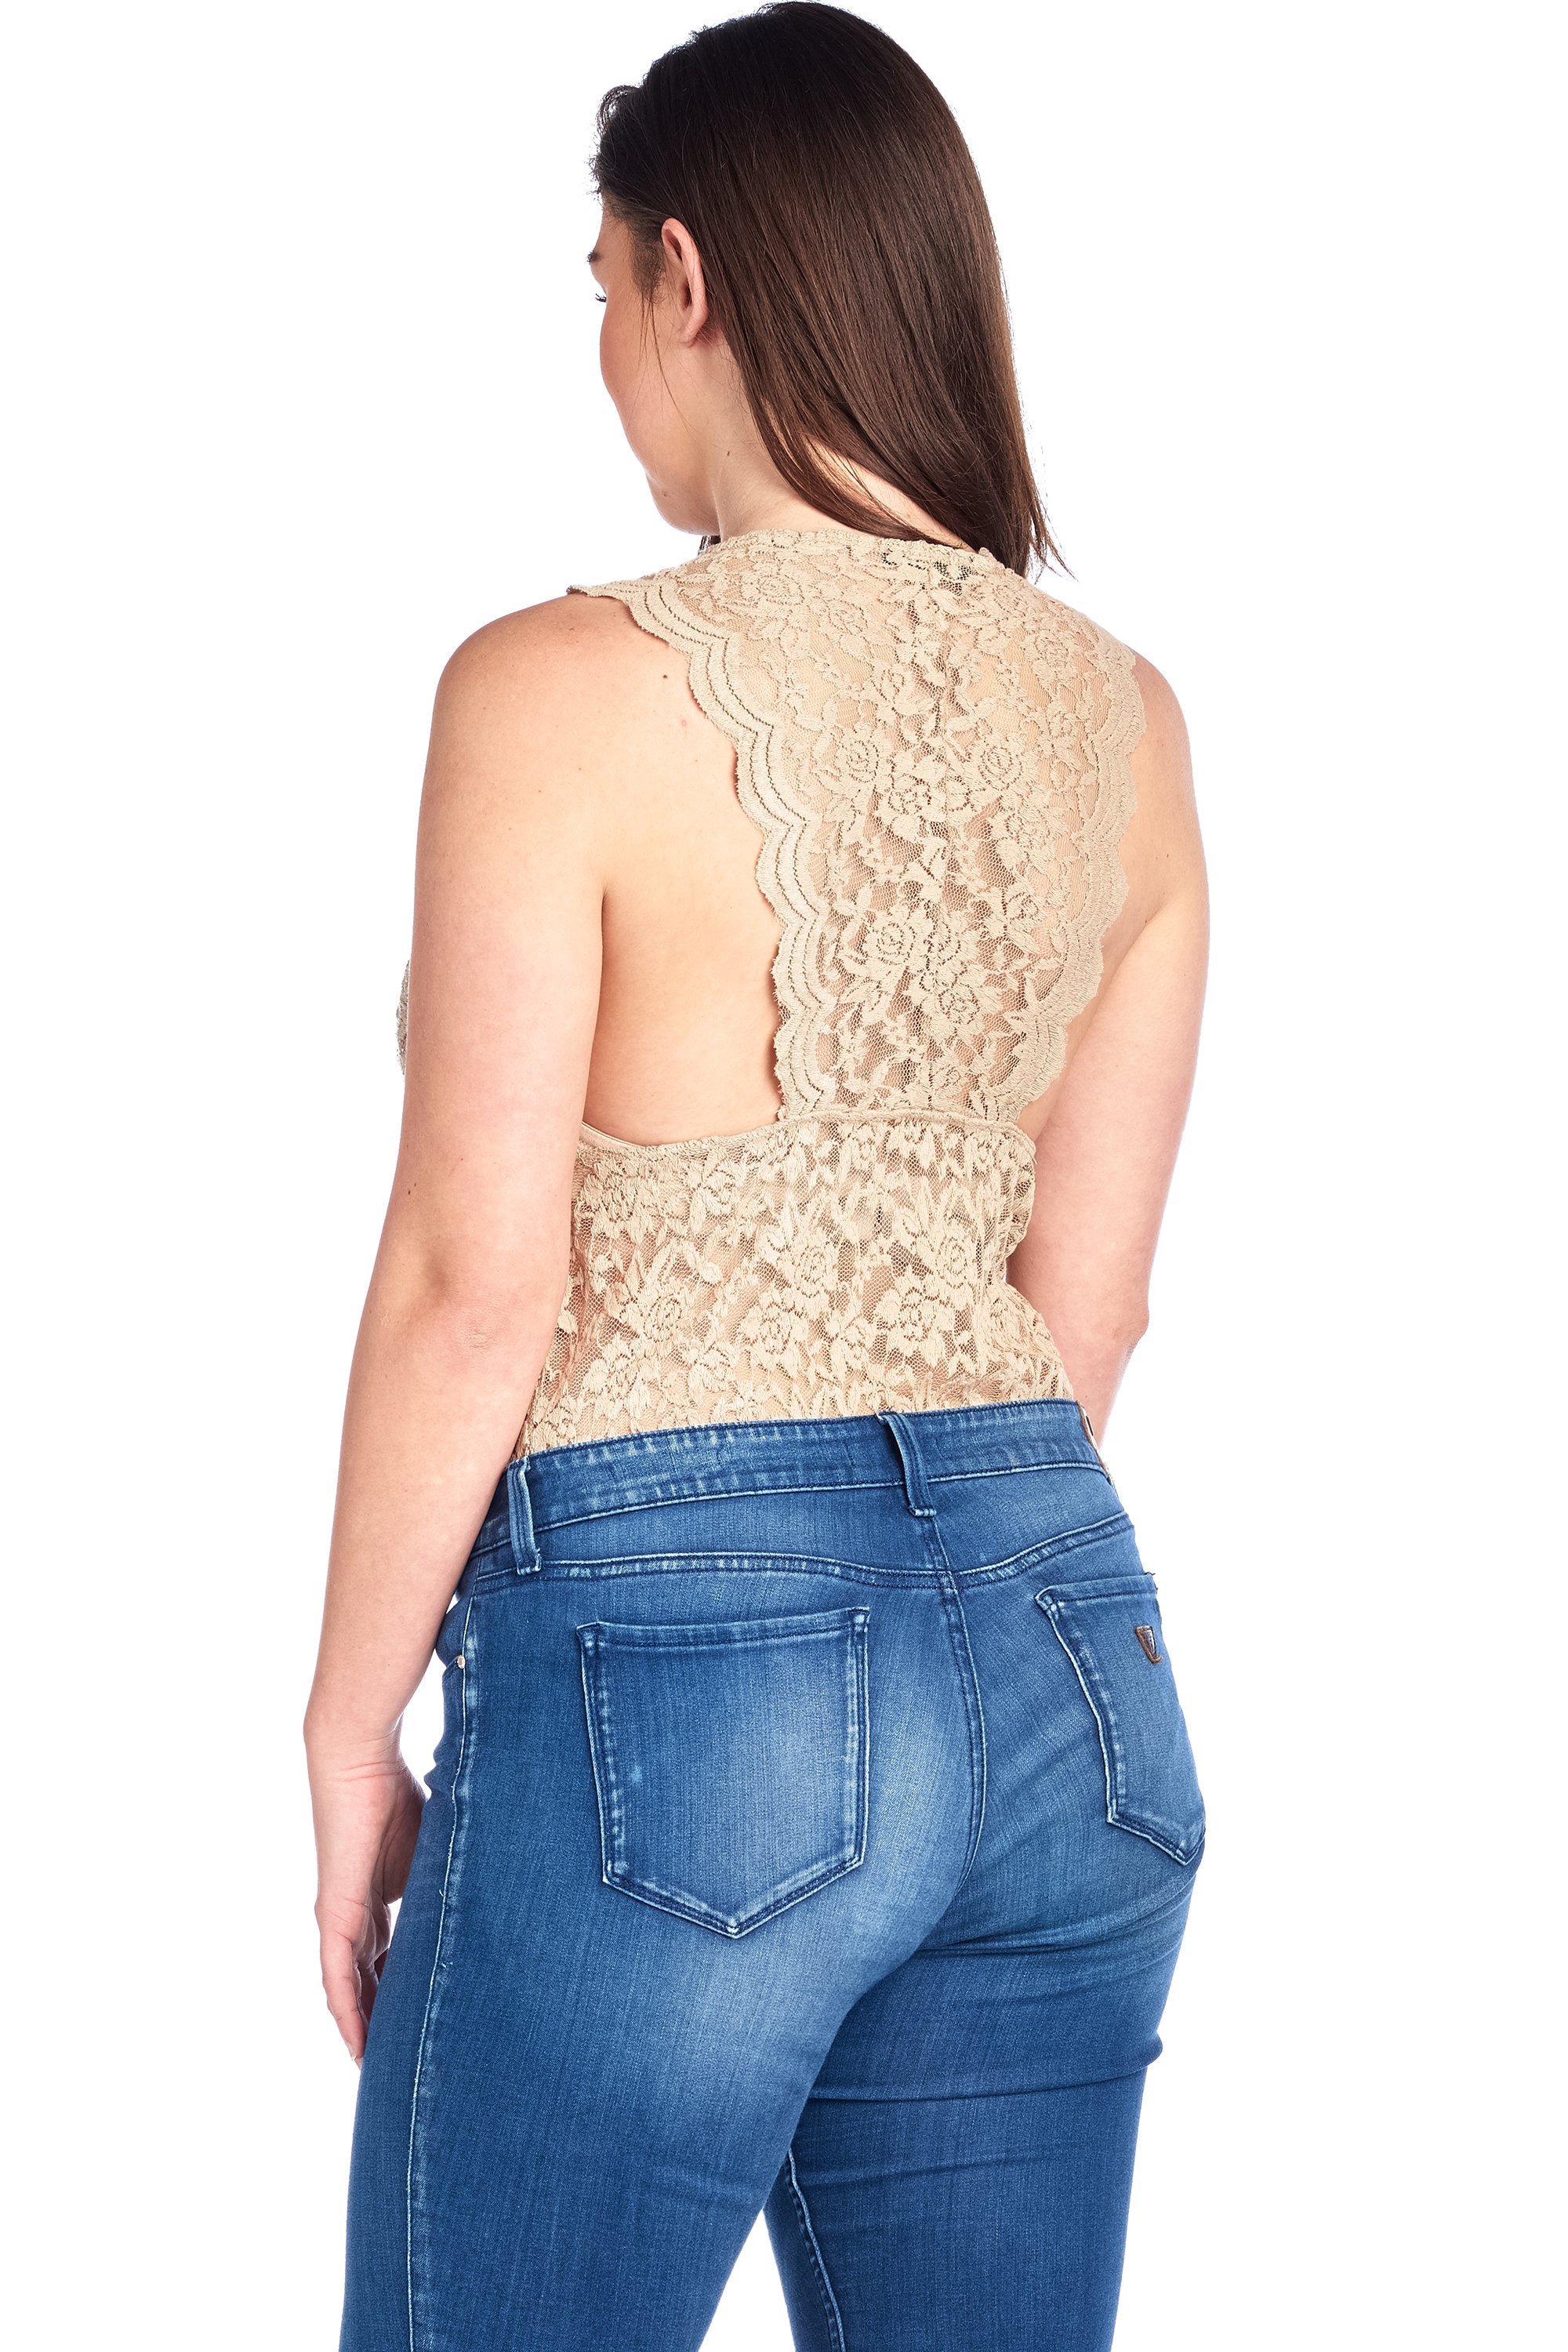 Women's Plus Size Sleeveless V Neck Racer Back Lace Snap Playsuit Bodysuit